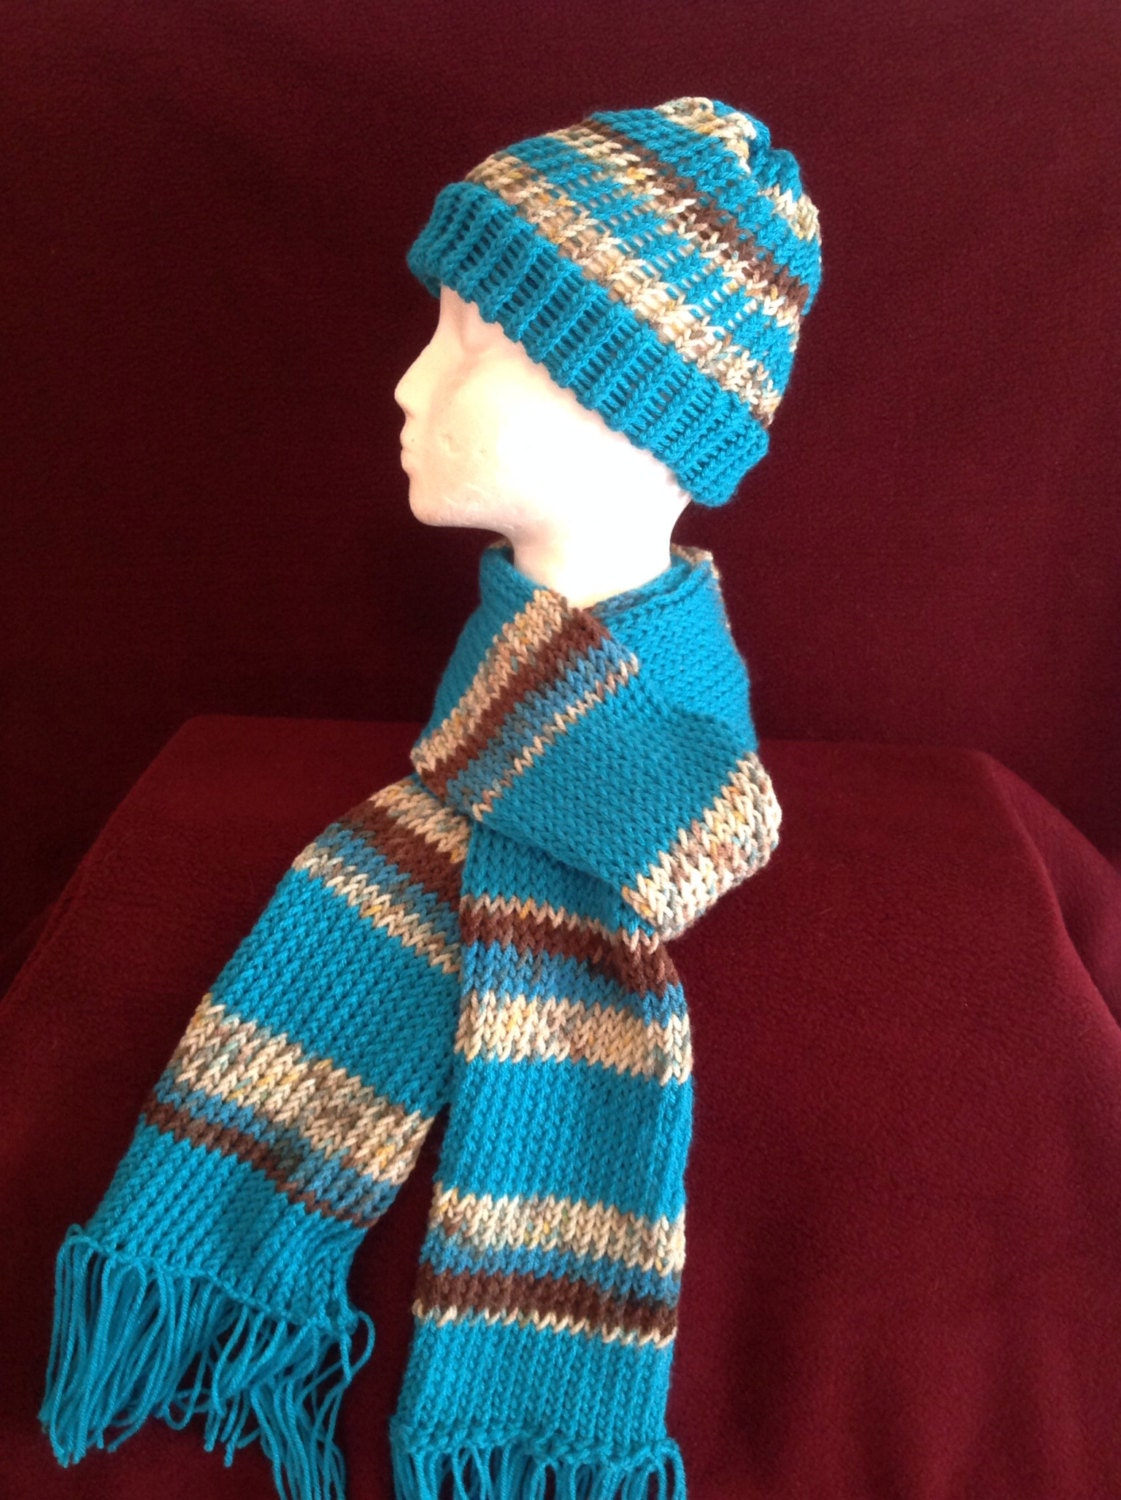 Knitting Loom Scarf Fringe : Loom Knitted Beanie Hat & Scarf Set in Turquoise Beige and